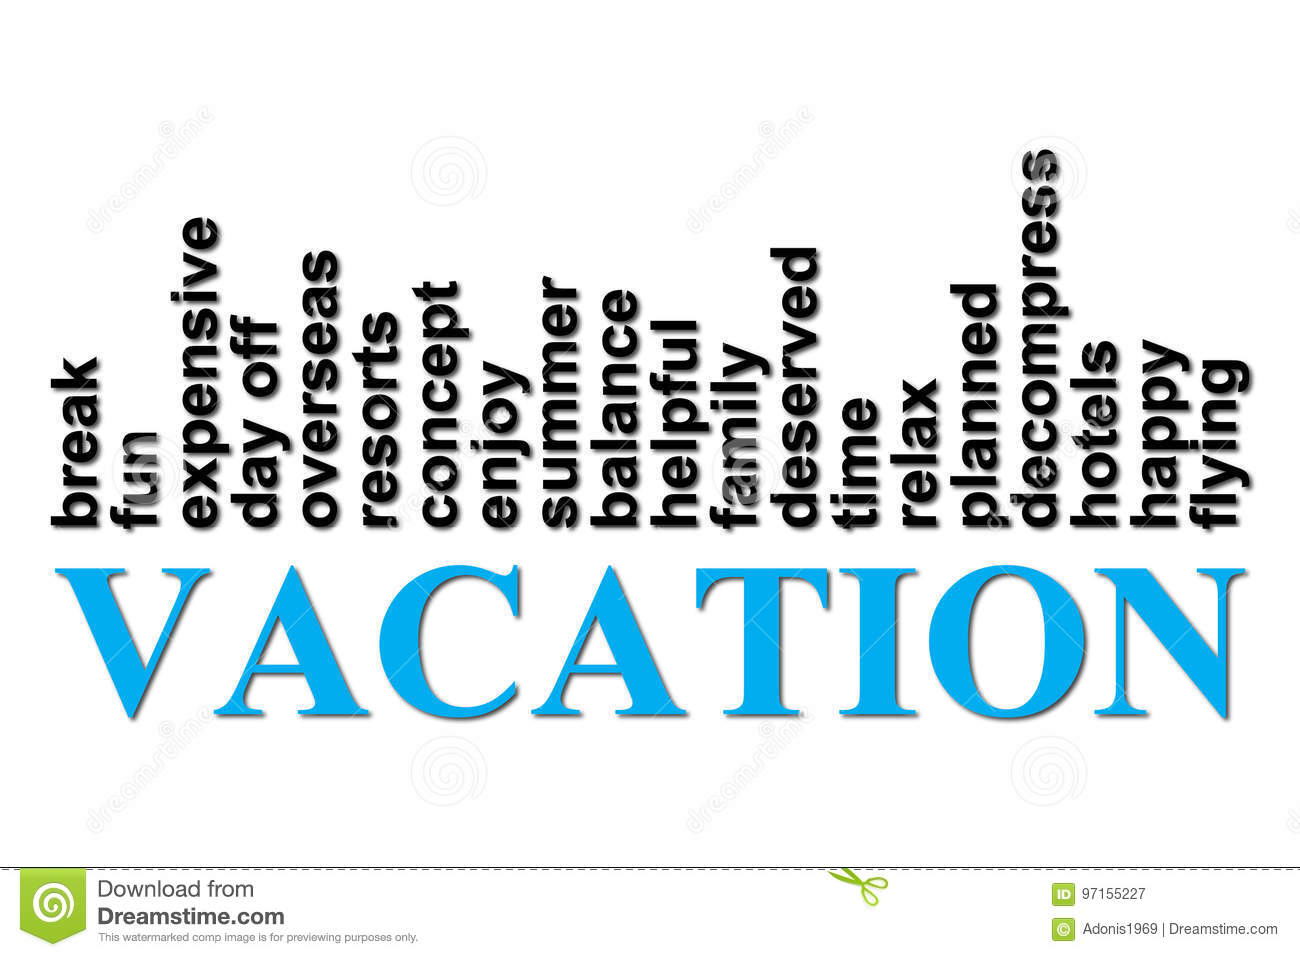 Vacation Words Concept stock vector. Illustration of ...